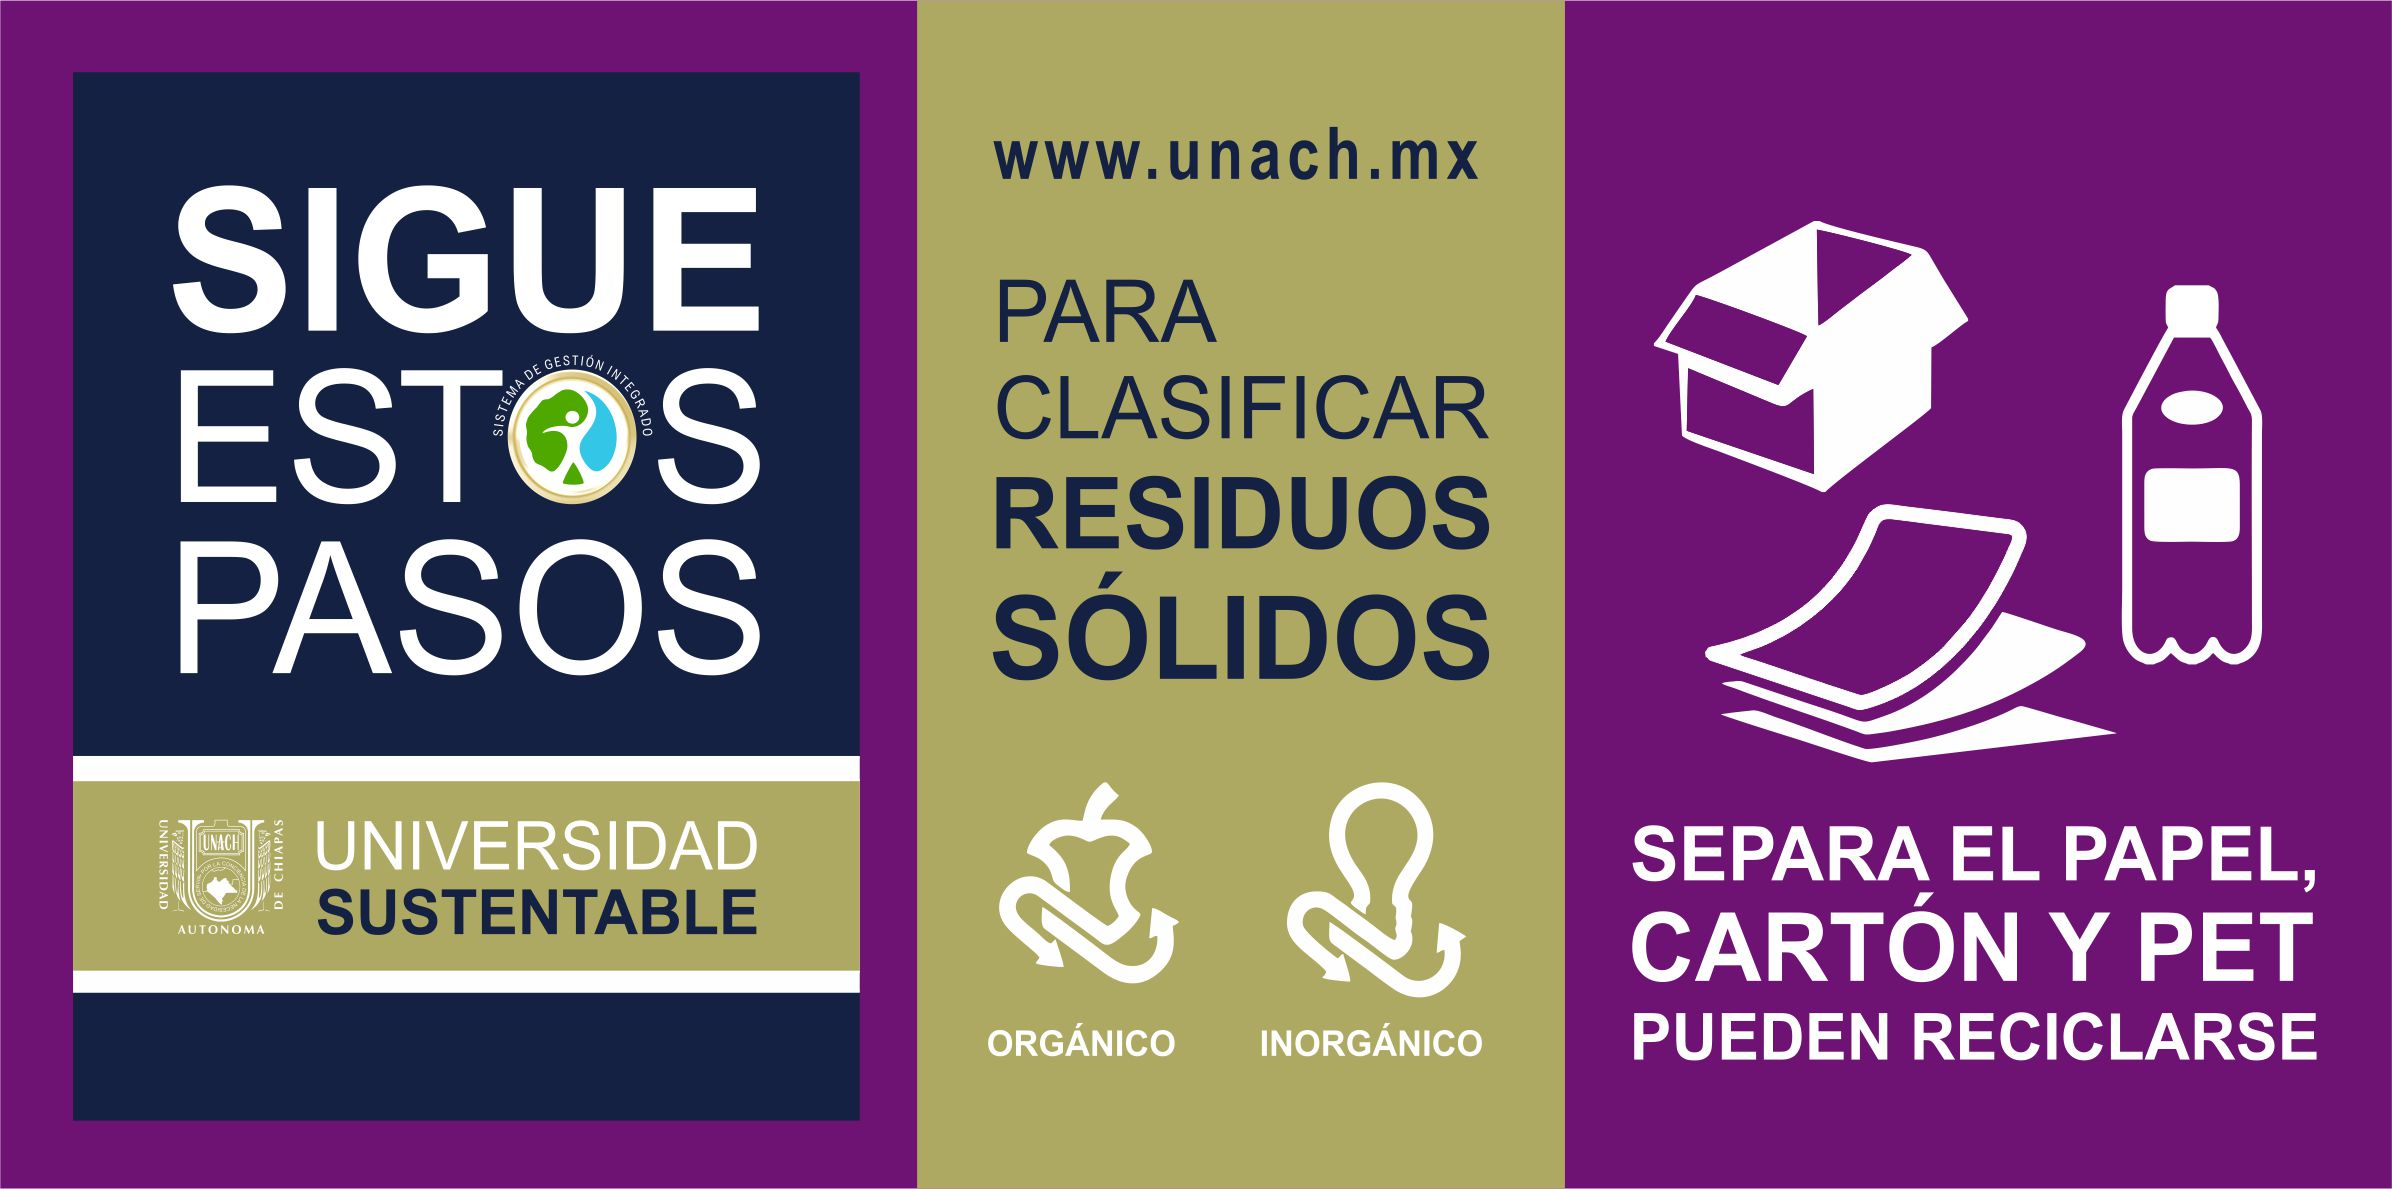 #UniversidadResponsable Recicla, Reduce y Reúsa #OrgulloUNACH